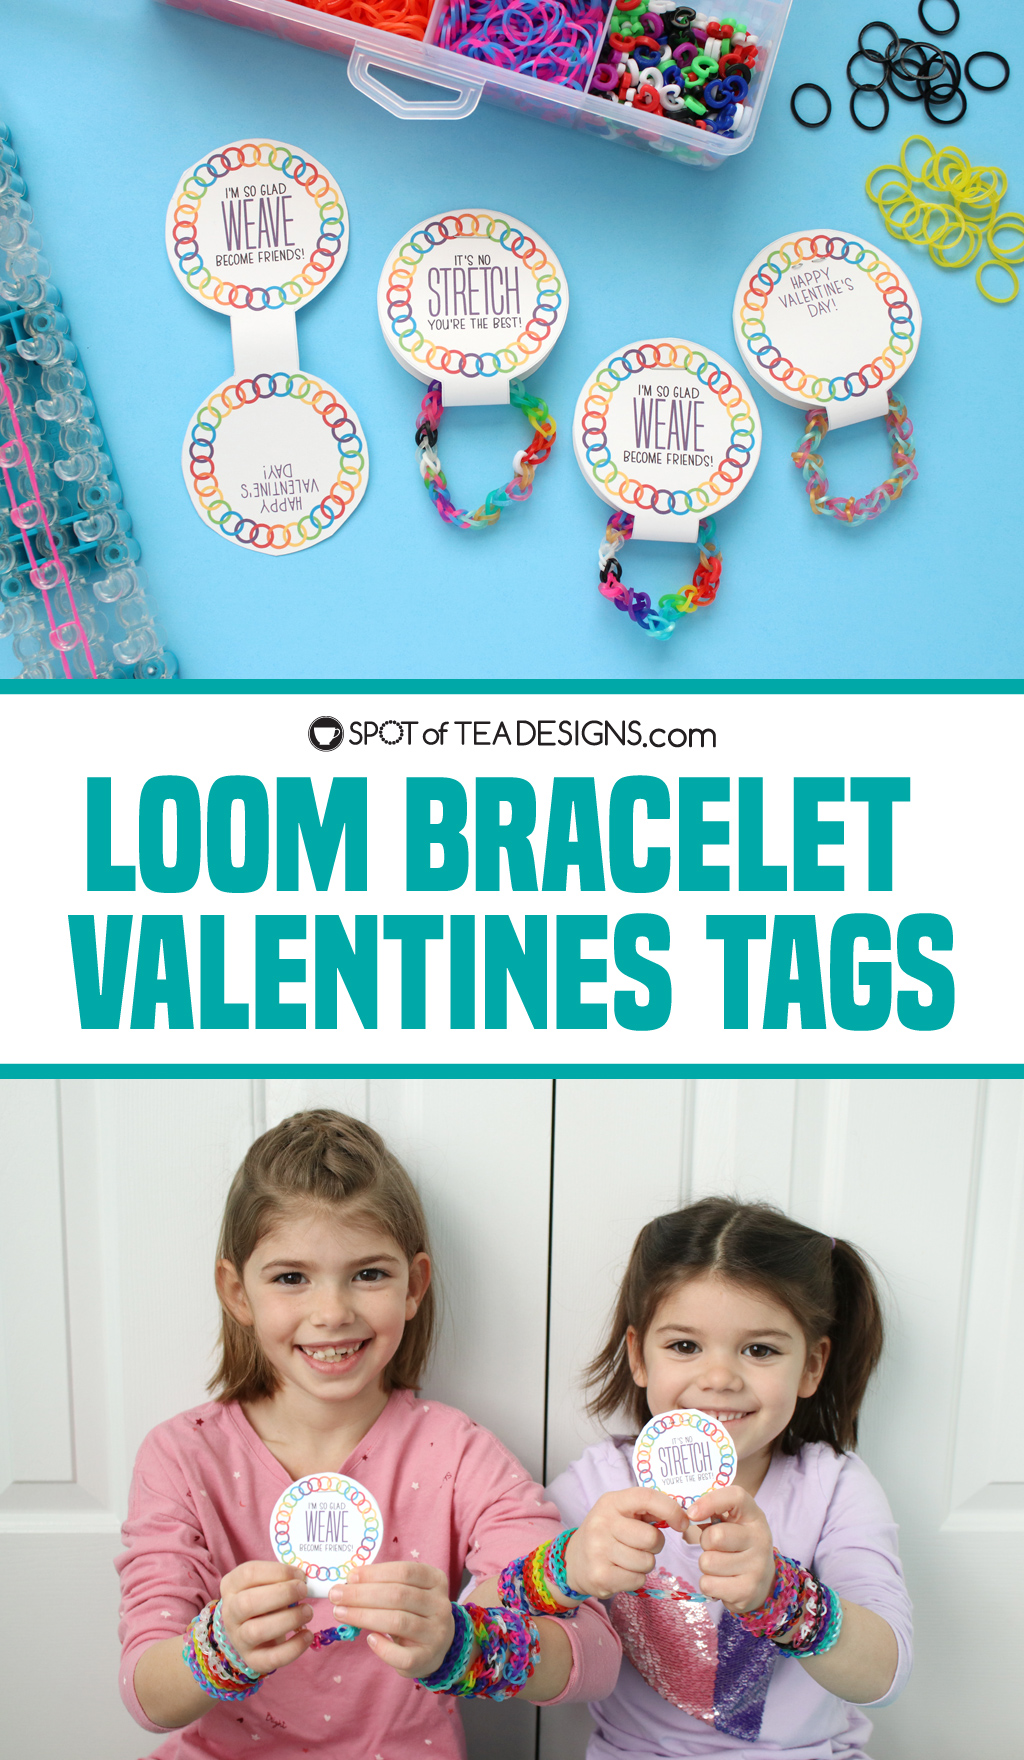 Loom bracelet printable valentine's tags - a non candy idea for a Valentine's day gift! | spotofteadesigns.com